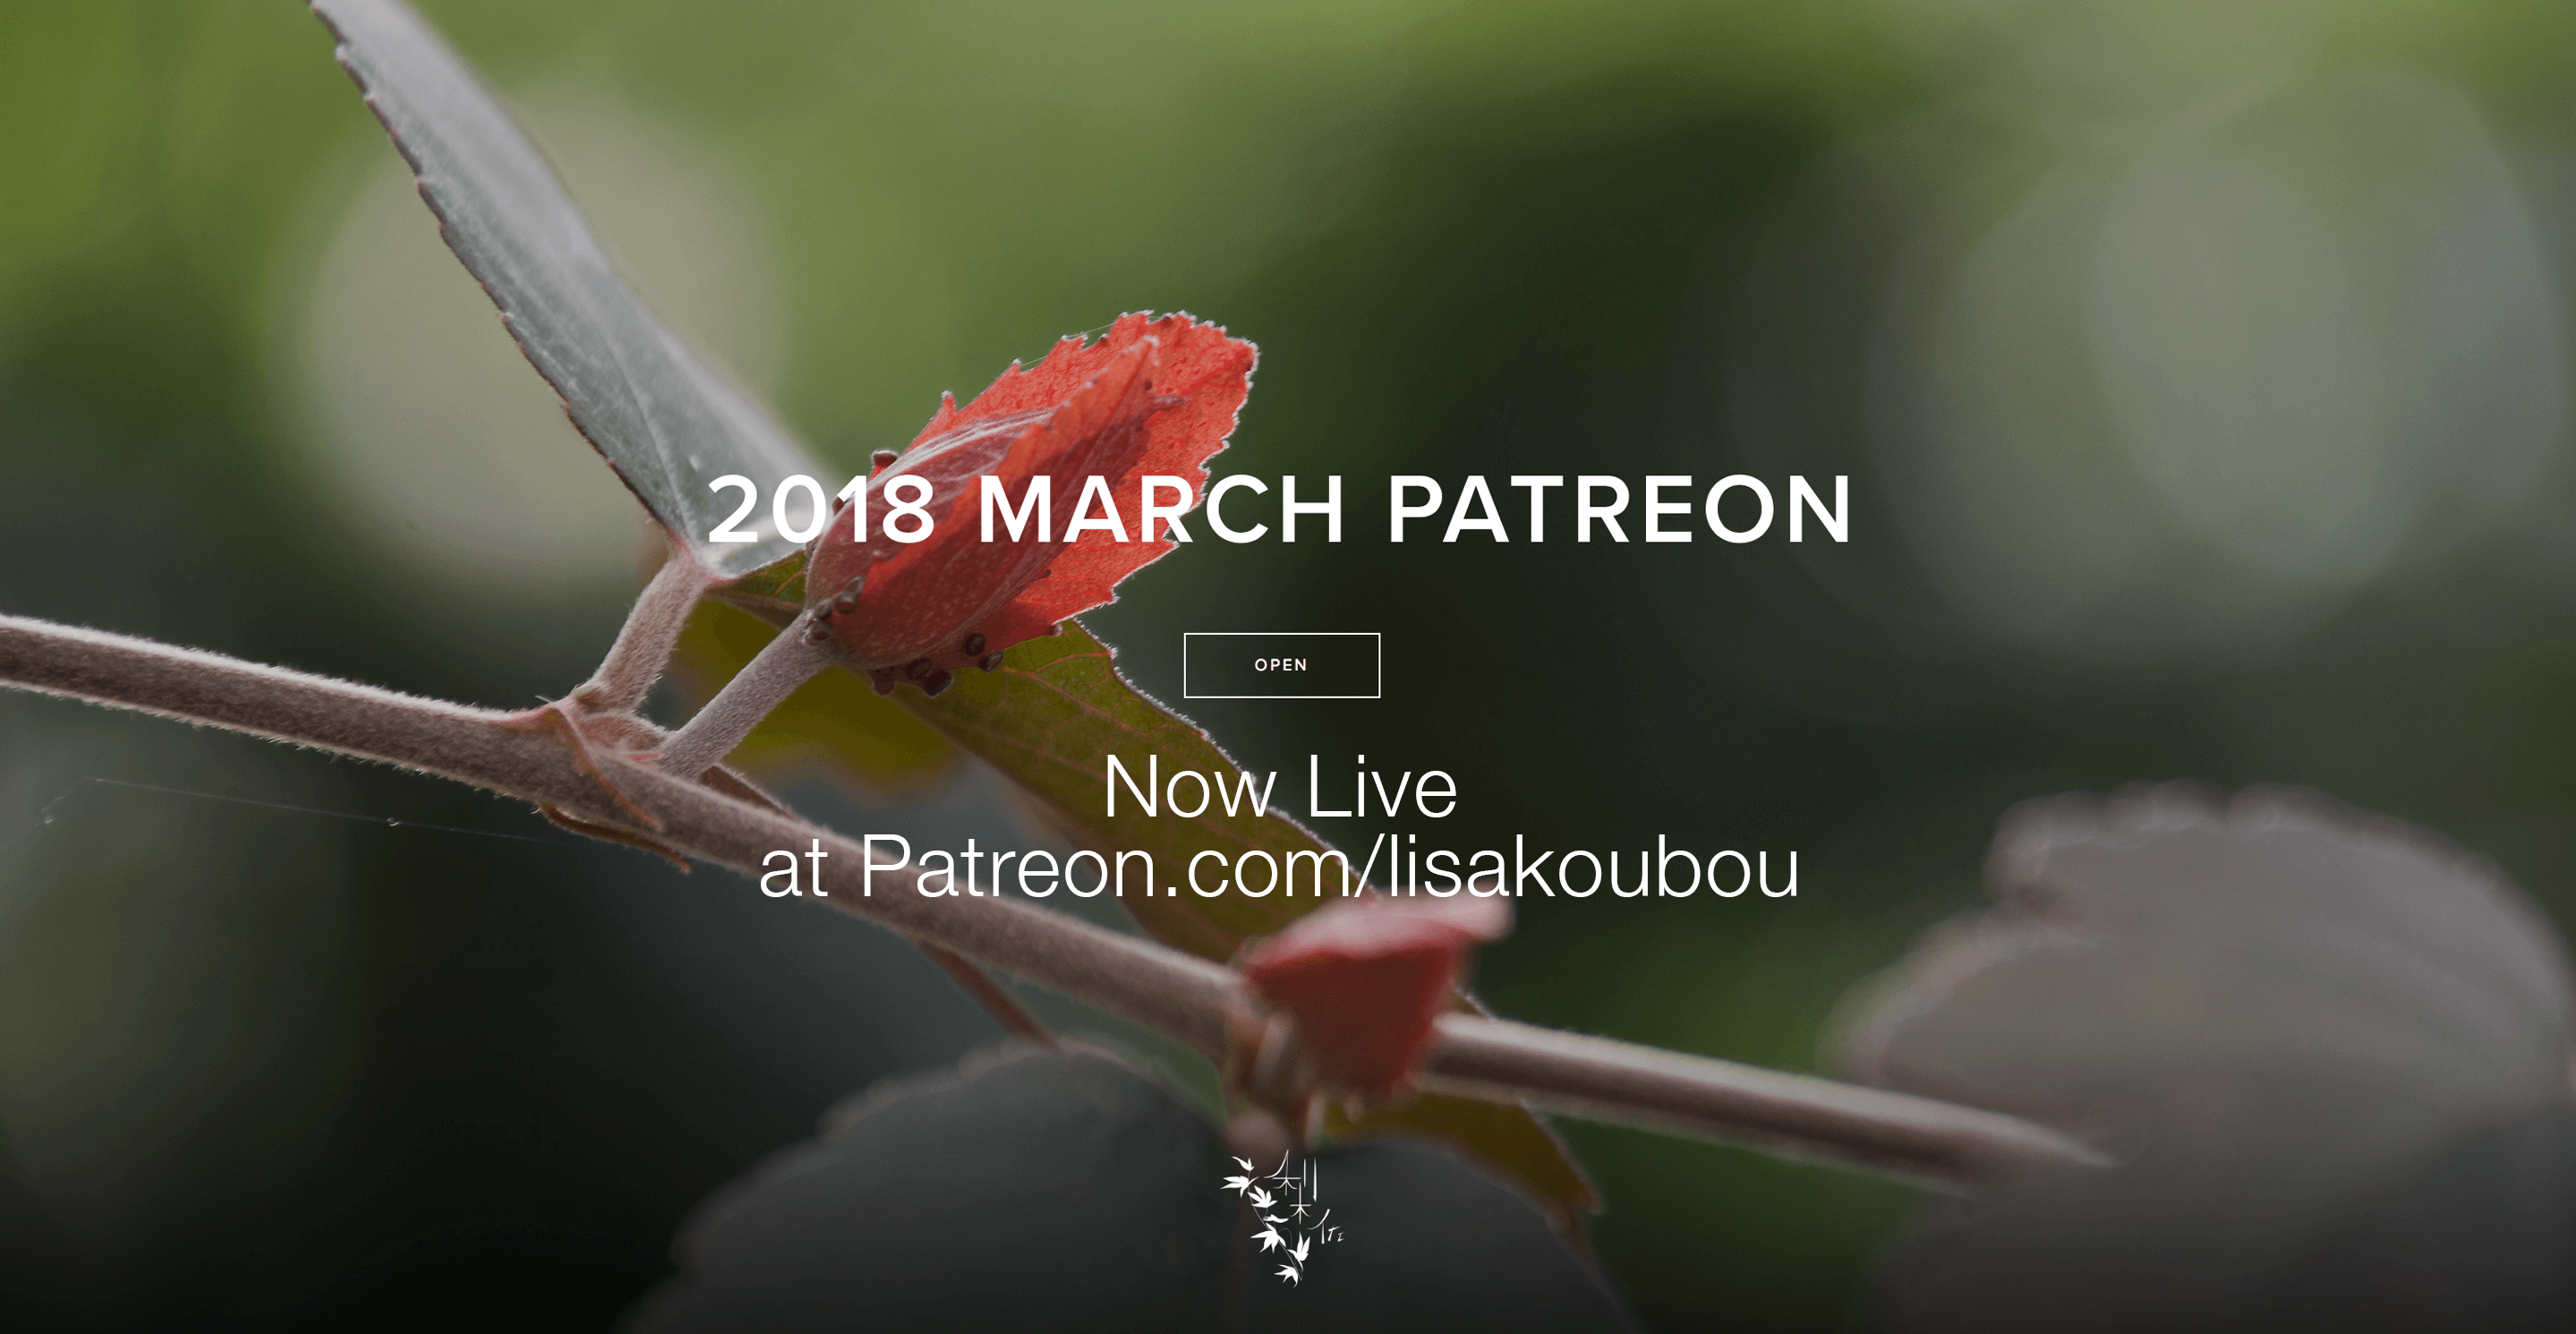 March Patreon Gallery 2018